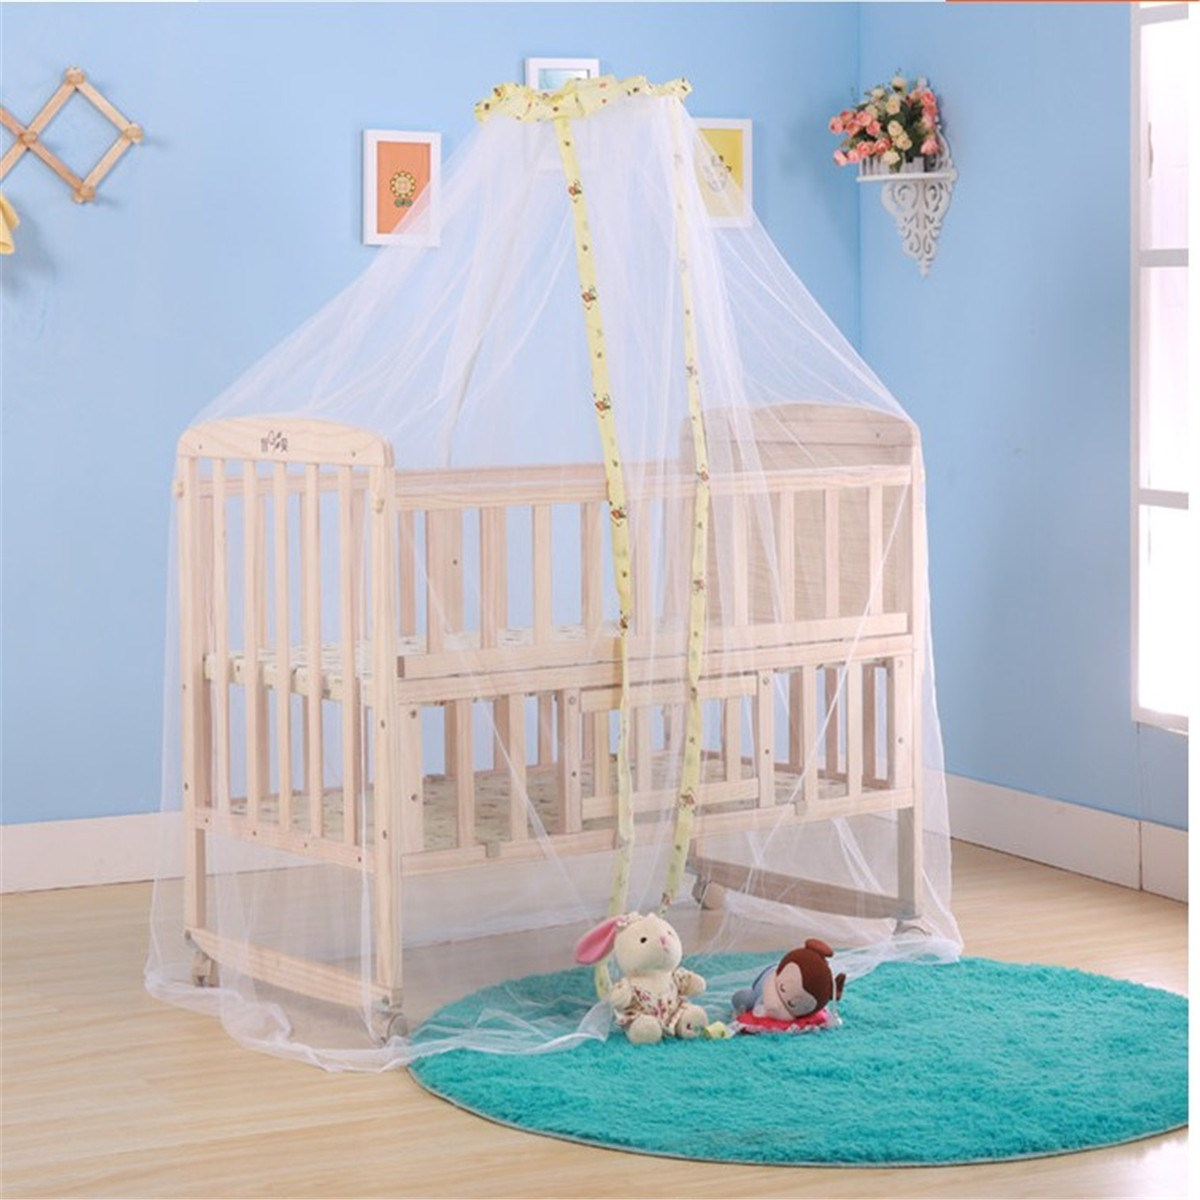 Baby crib yellow - Infant Baby Protect Summer Mosquito Net Newborn Crib Cot Bed Accessories Lovely Design Toddler Favor Durable